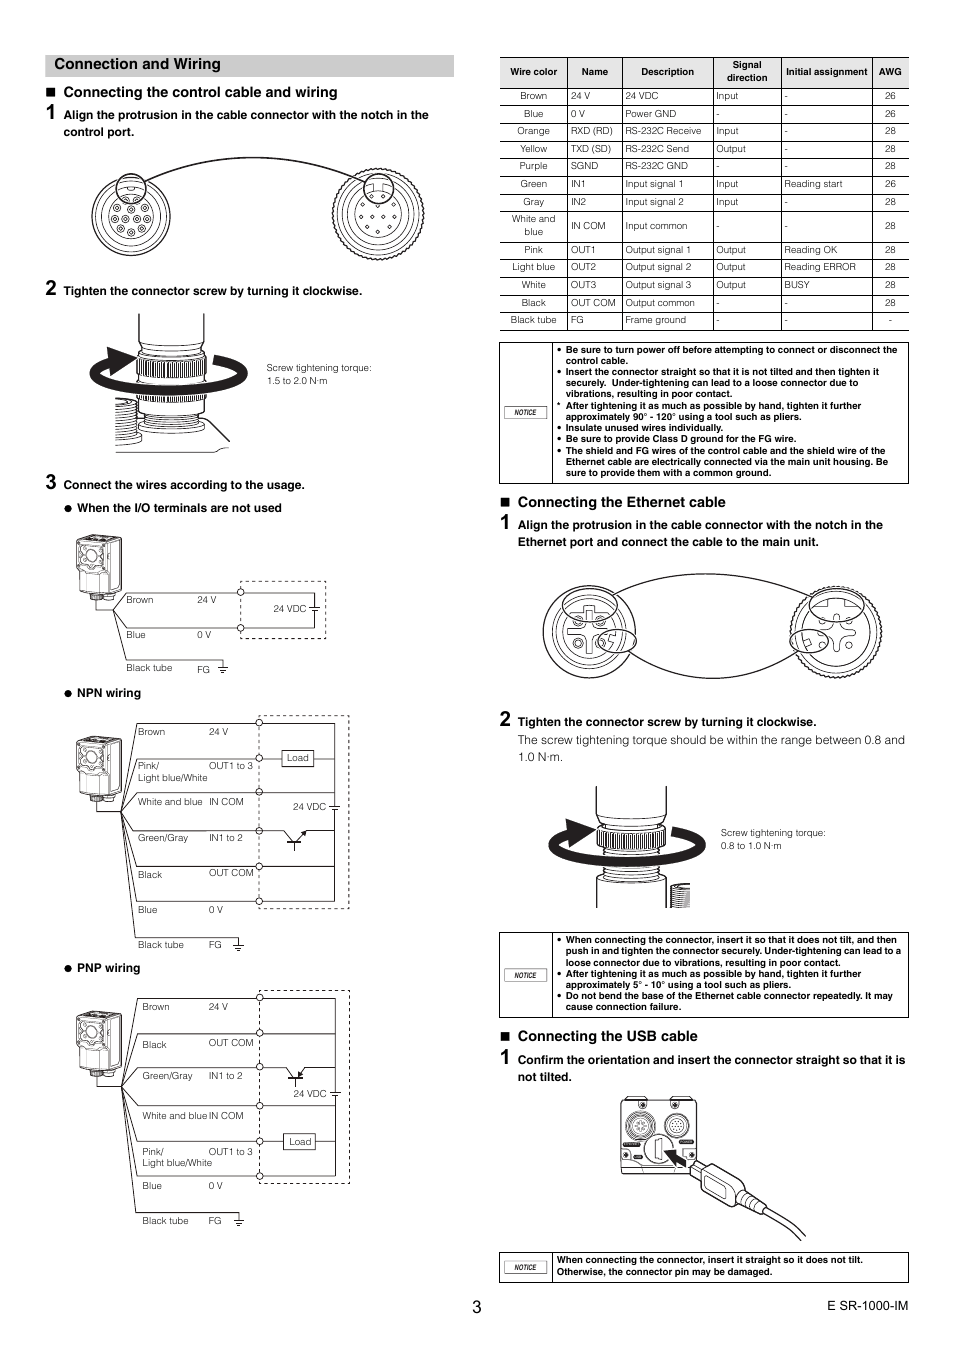 medium resolution of connection and wiring connecting the control cable and wiring connecting the ethernet cable